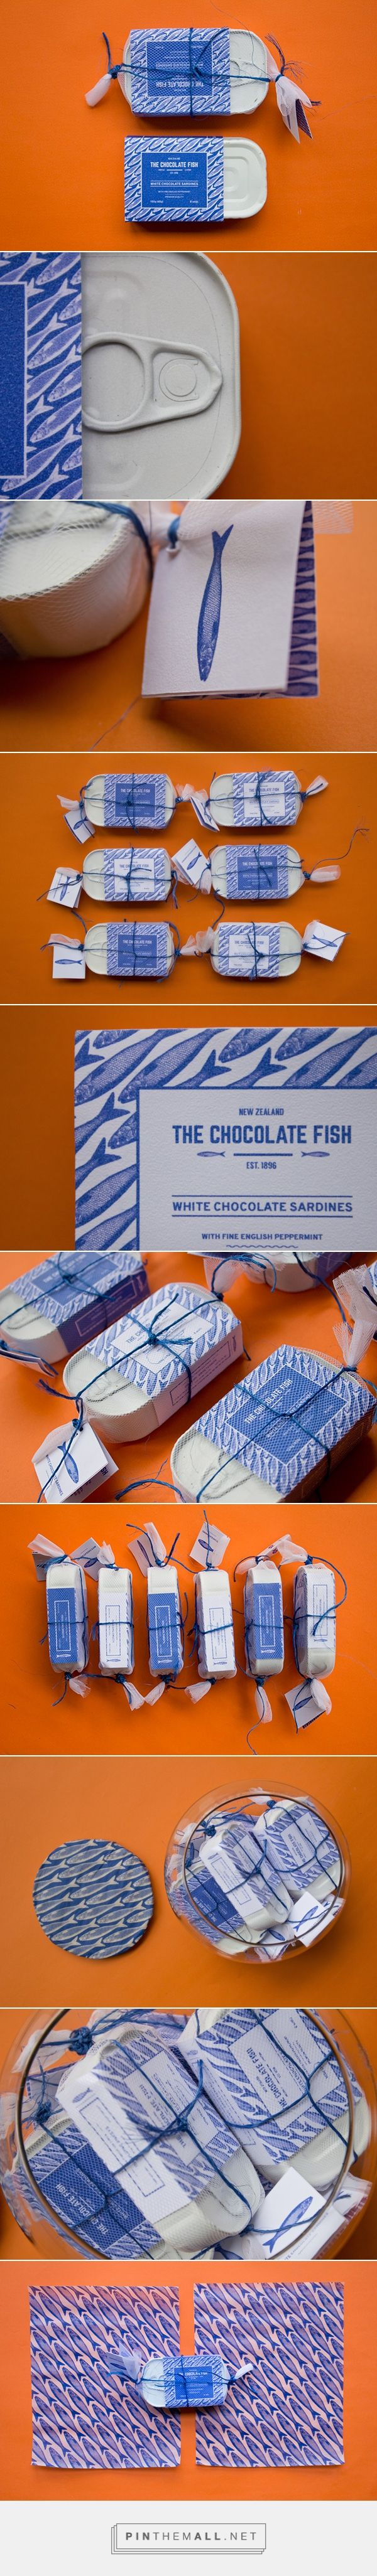 The chocolate fish / The chocolate fish is a New Zealand chocolate brand, that…